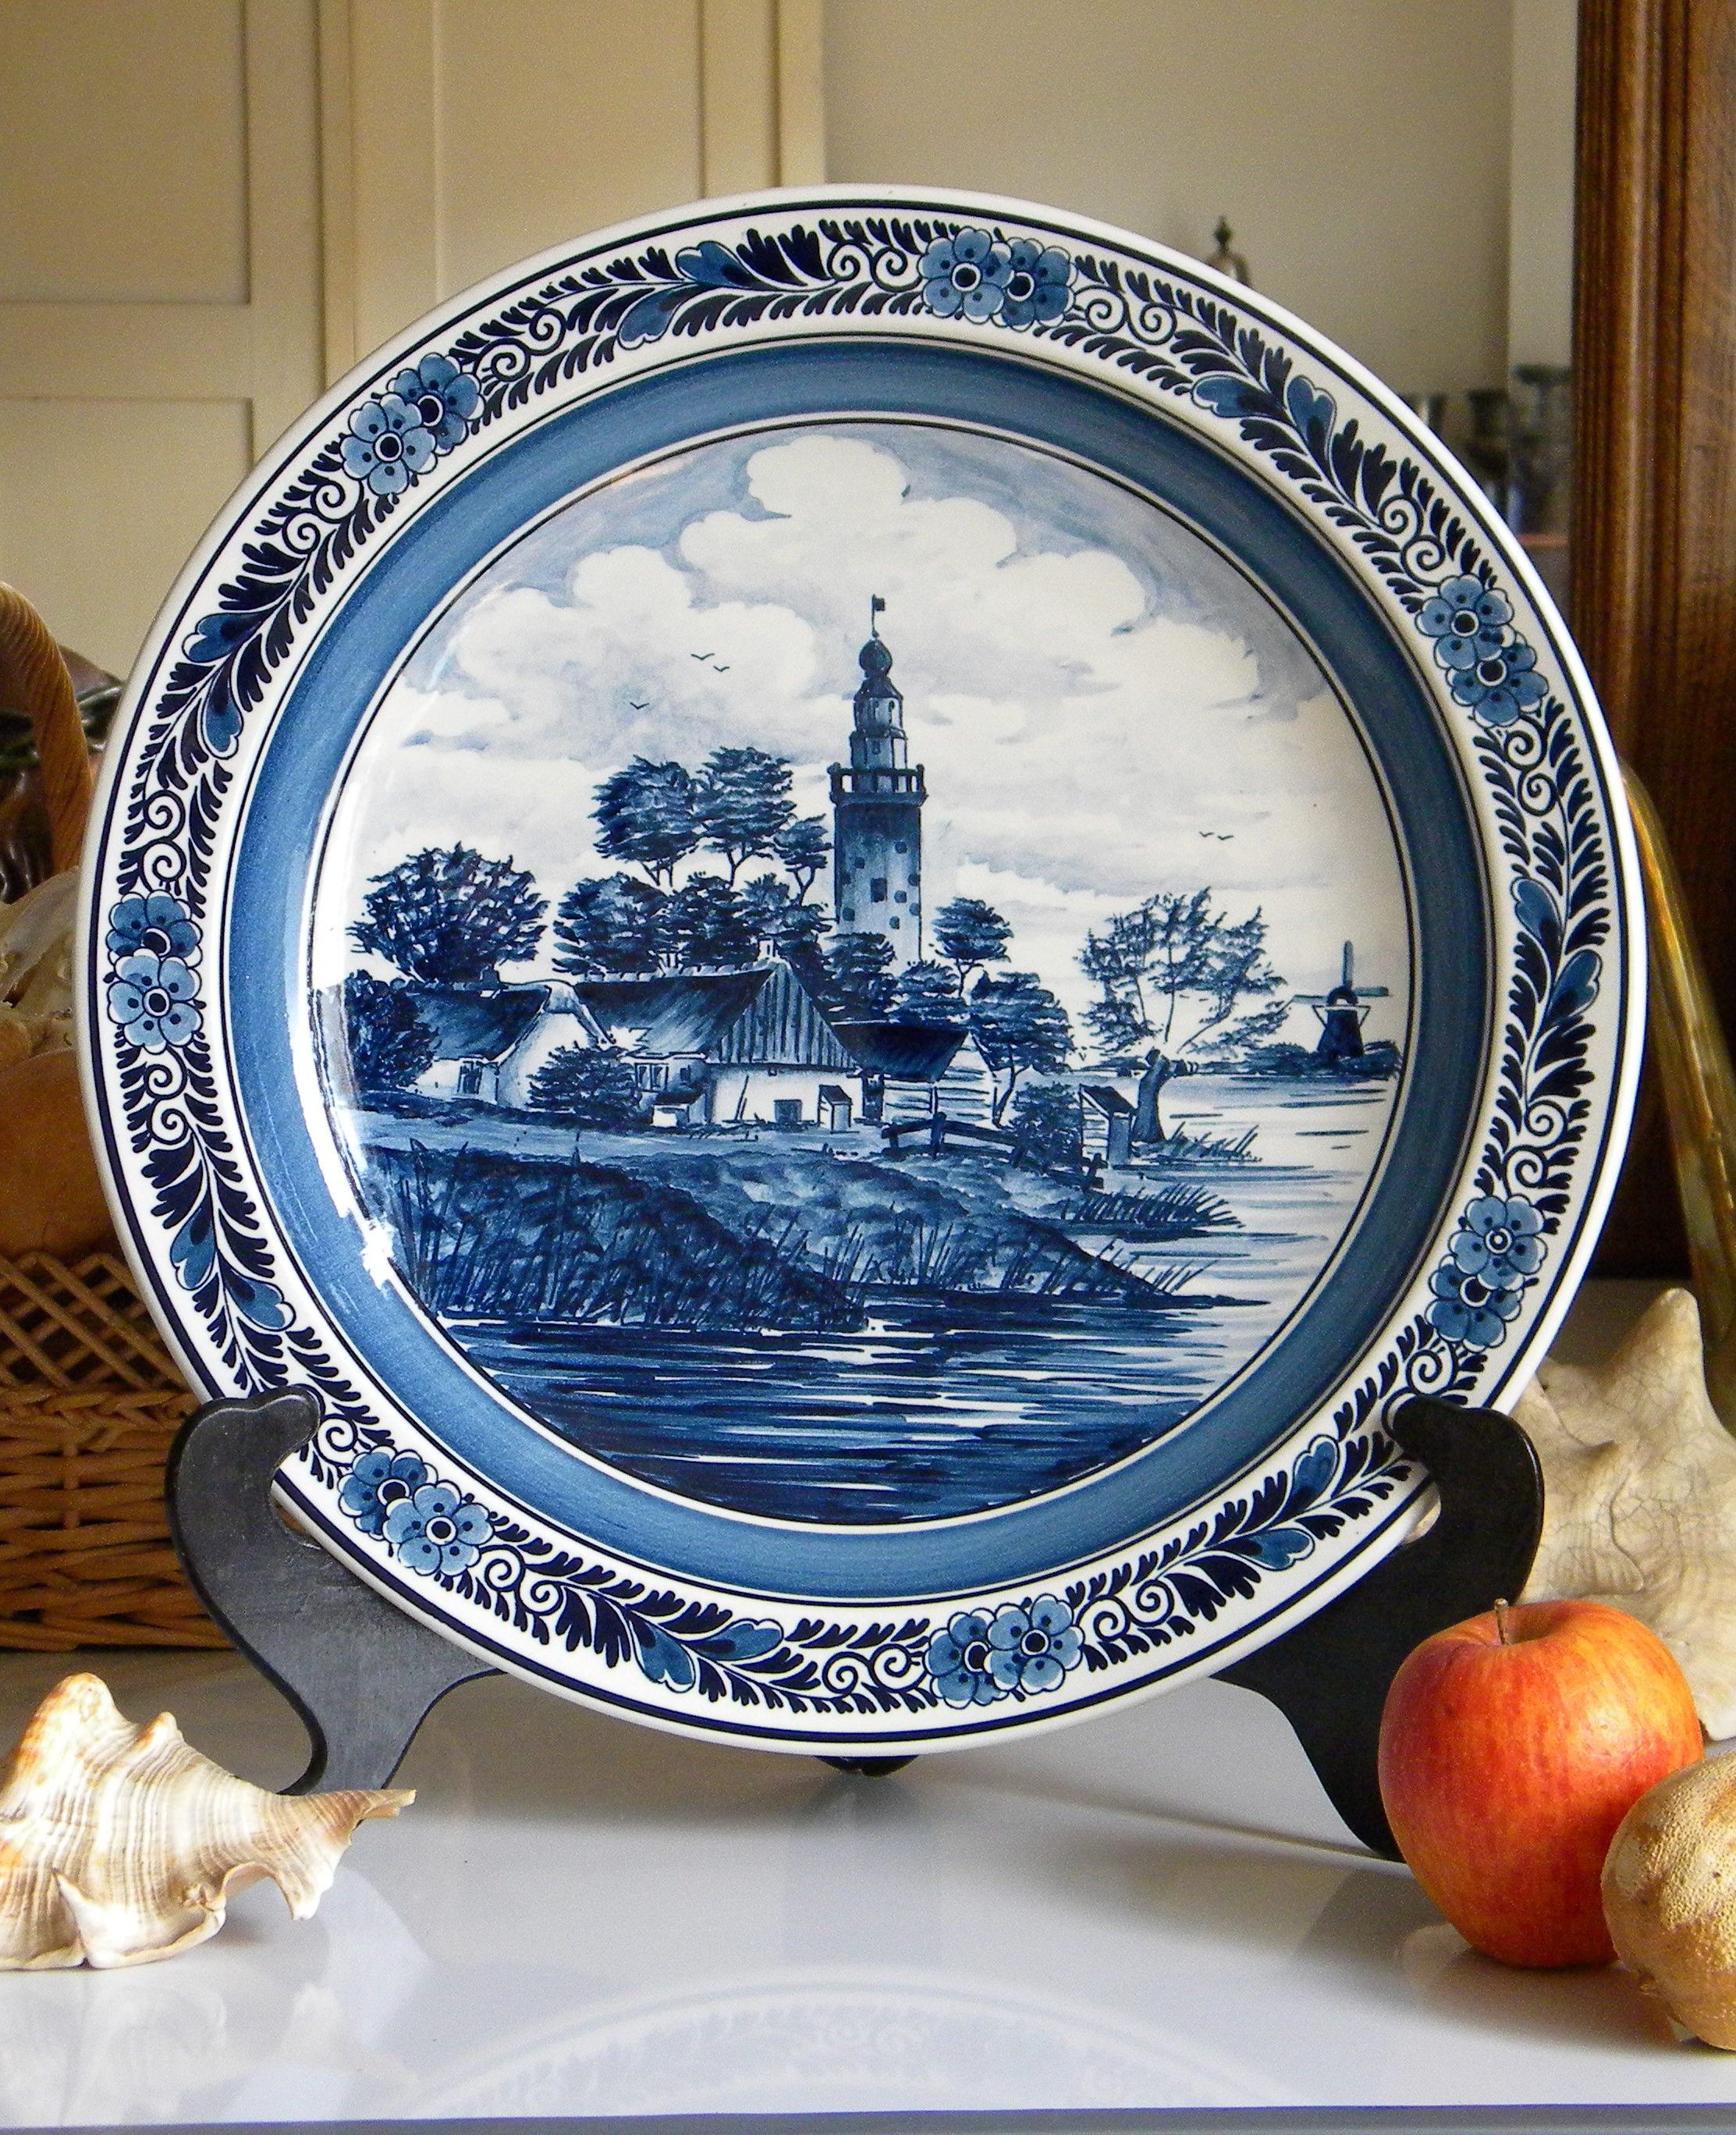 Blue And White Decorative Wall Plates Amusing Large Delft Blue Royal Goedewaagen Gouda Holland Vintage Design Decoration